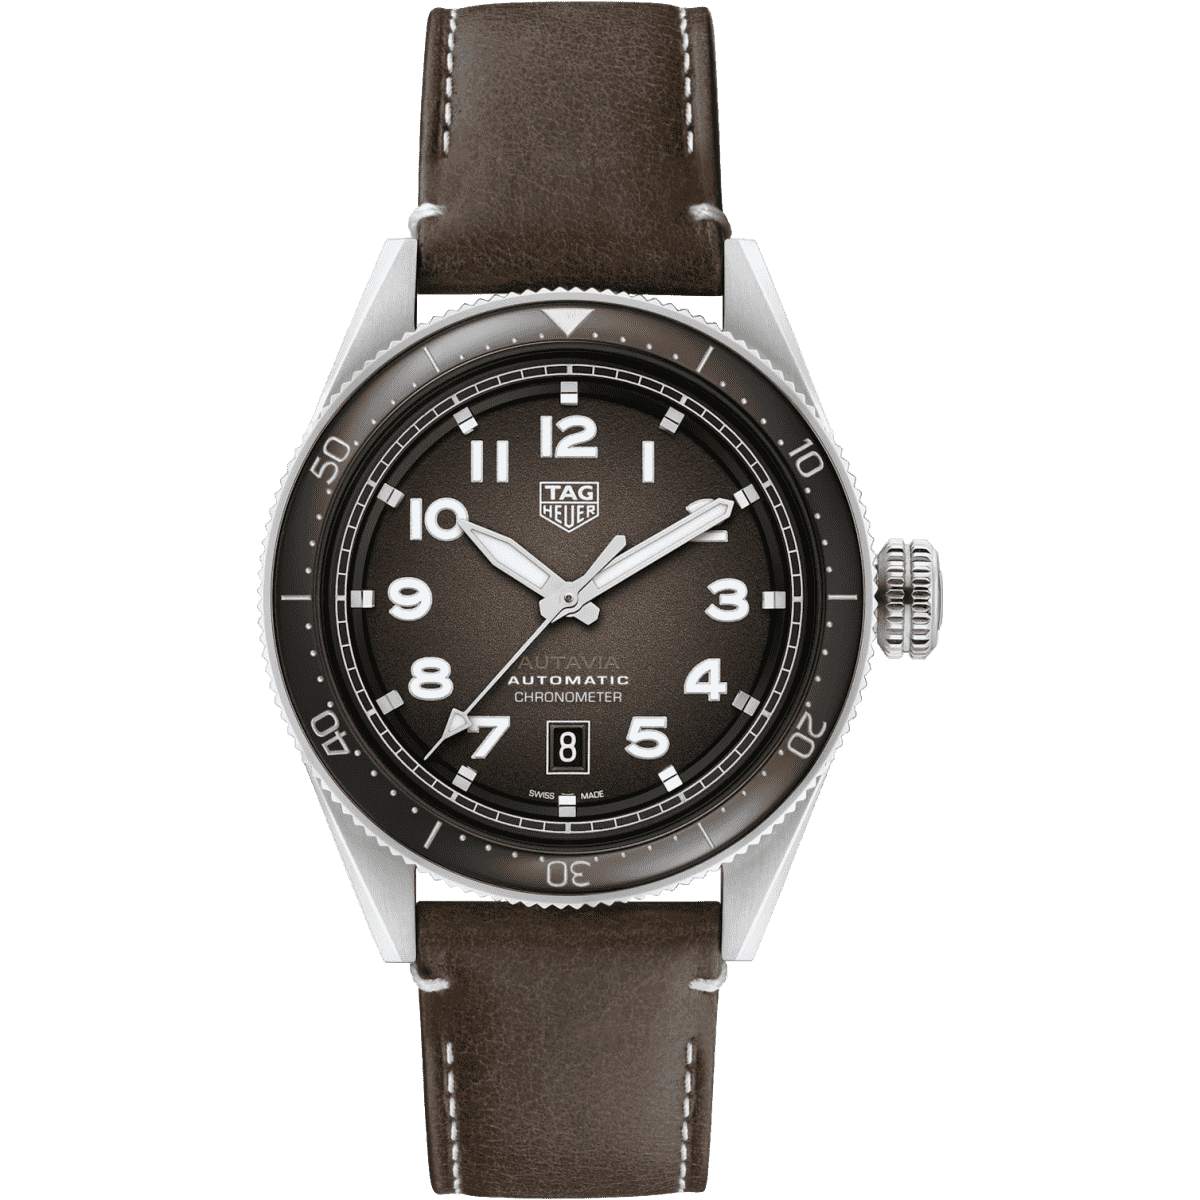 Мужские Часы Autavia Calibre 5 Chronometer 42 mm